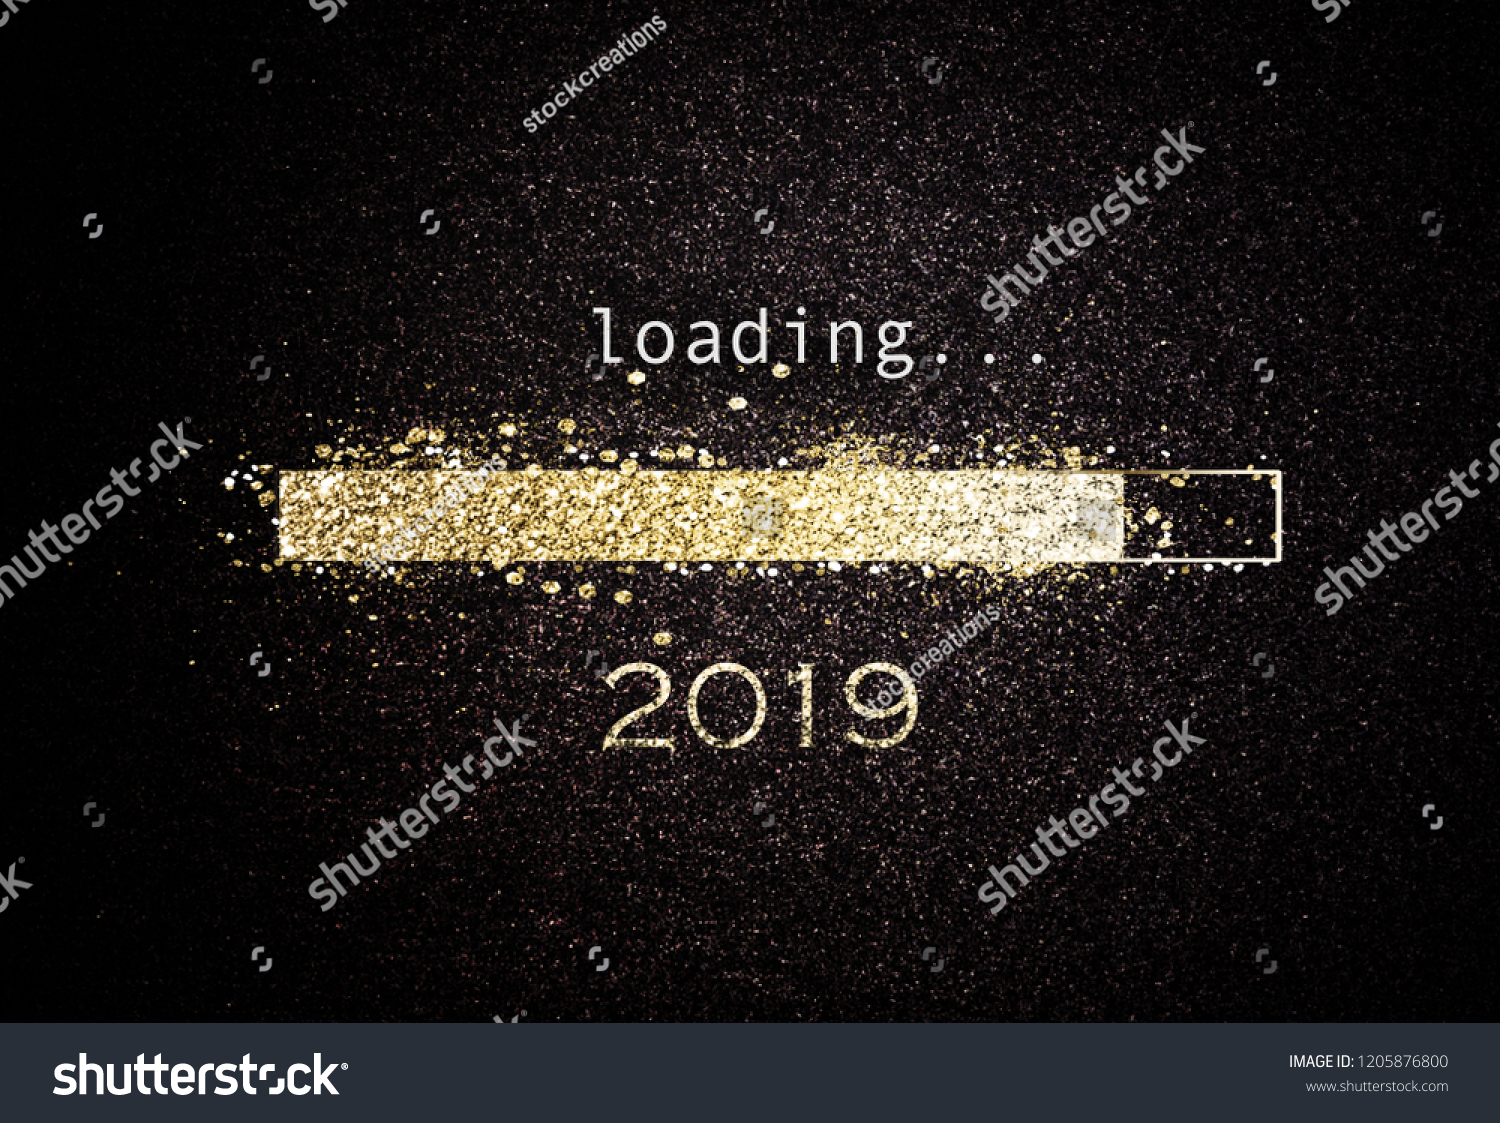 Computer screen with loading bar counting down for New Years Eve 2019 with sparkling glitter and copy space over black #1205876800